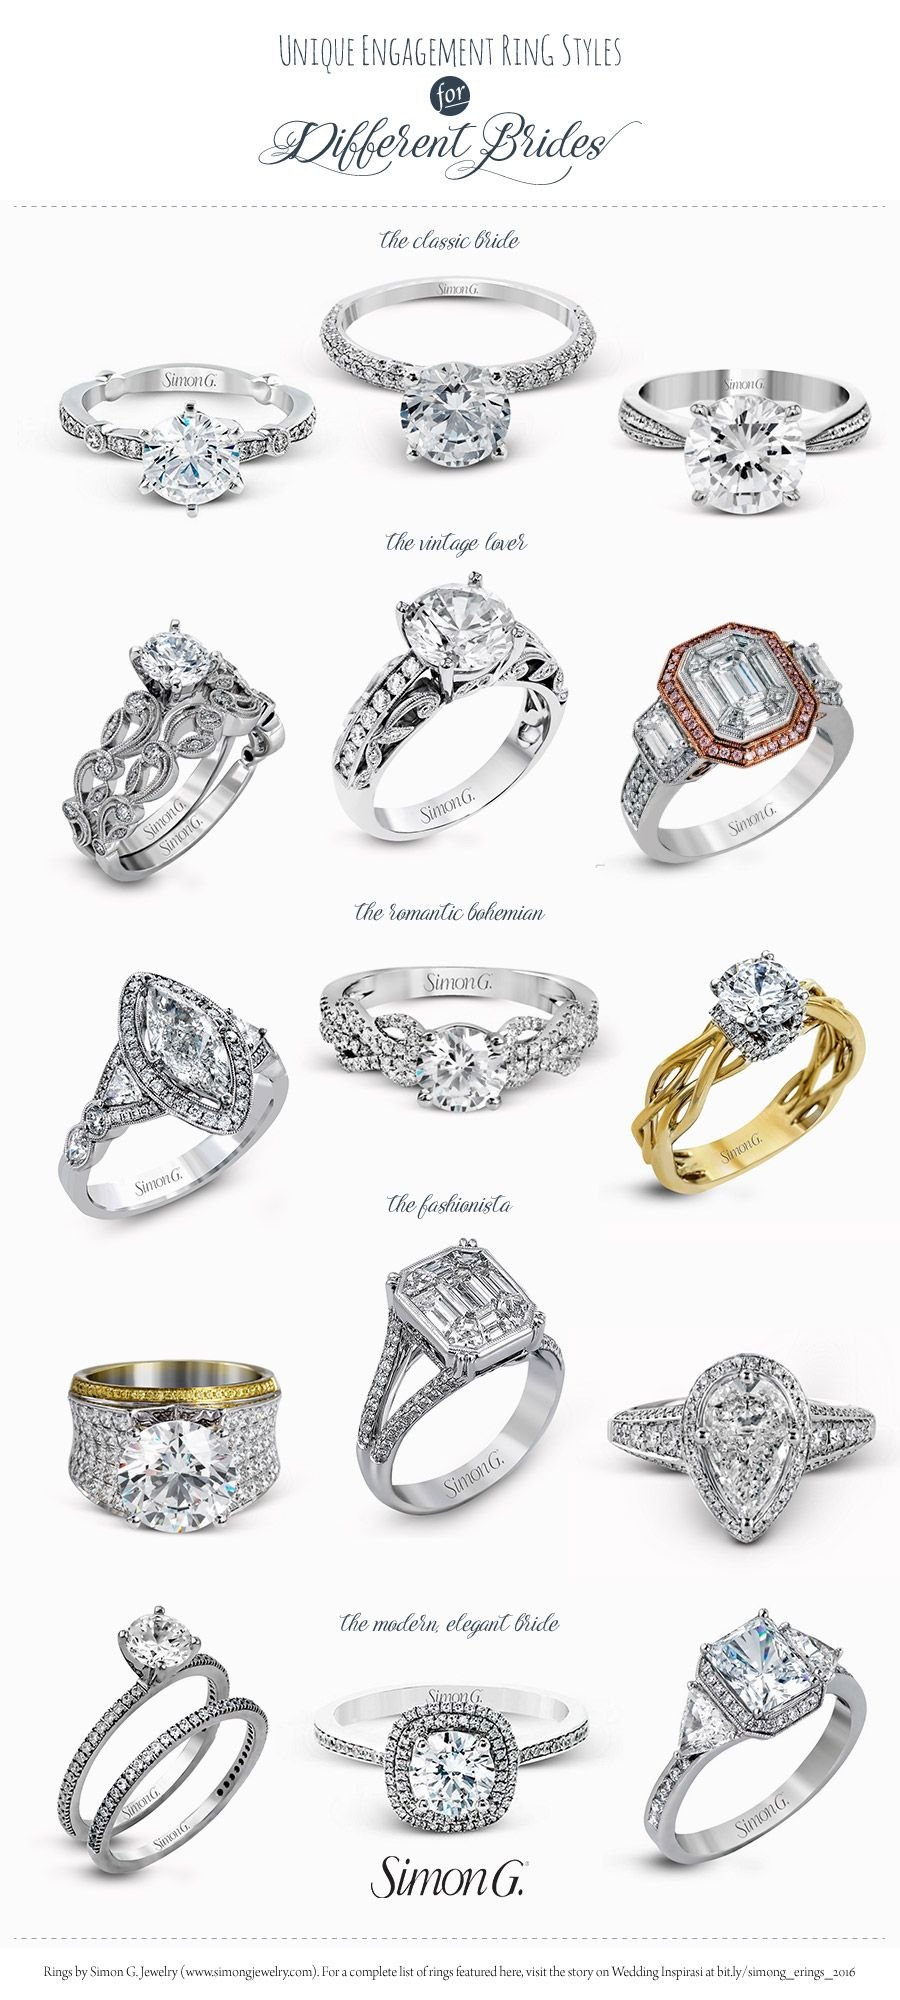 simon g engagement ring styles for every bride bridal With types of wedding rings styles